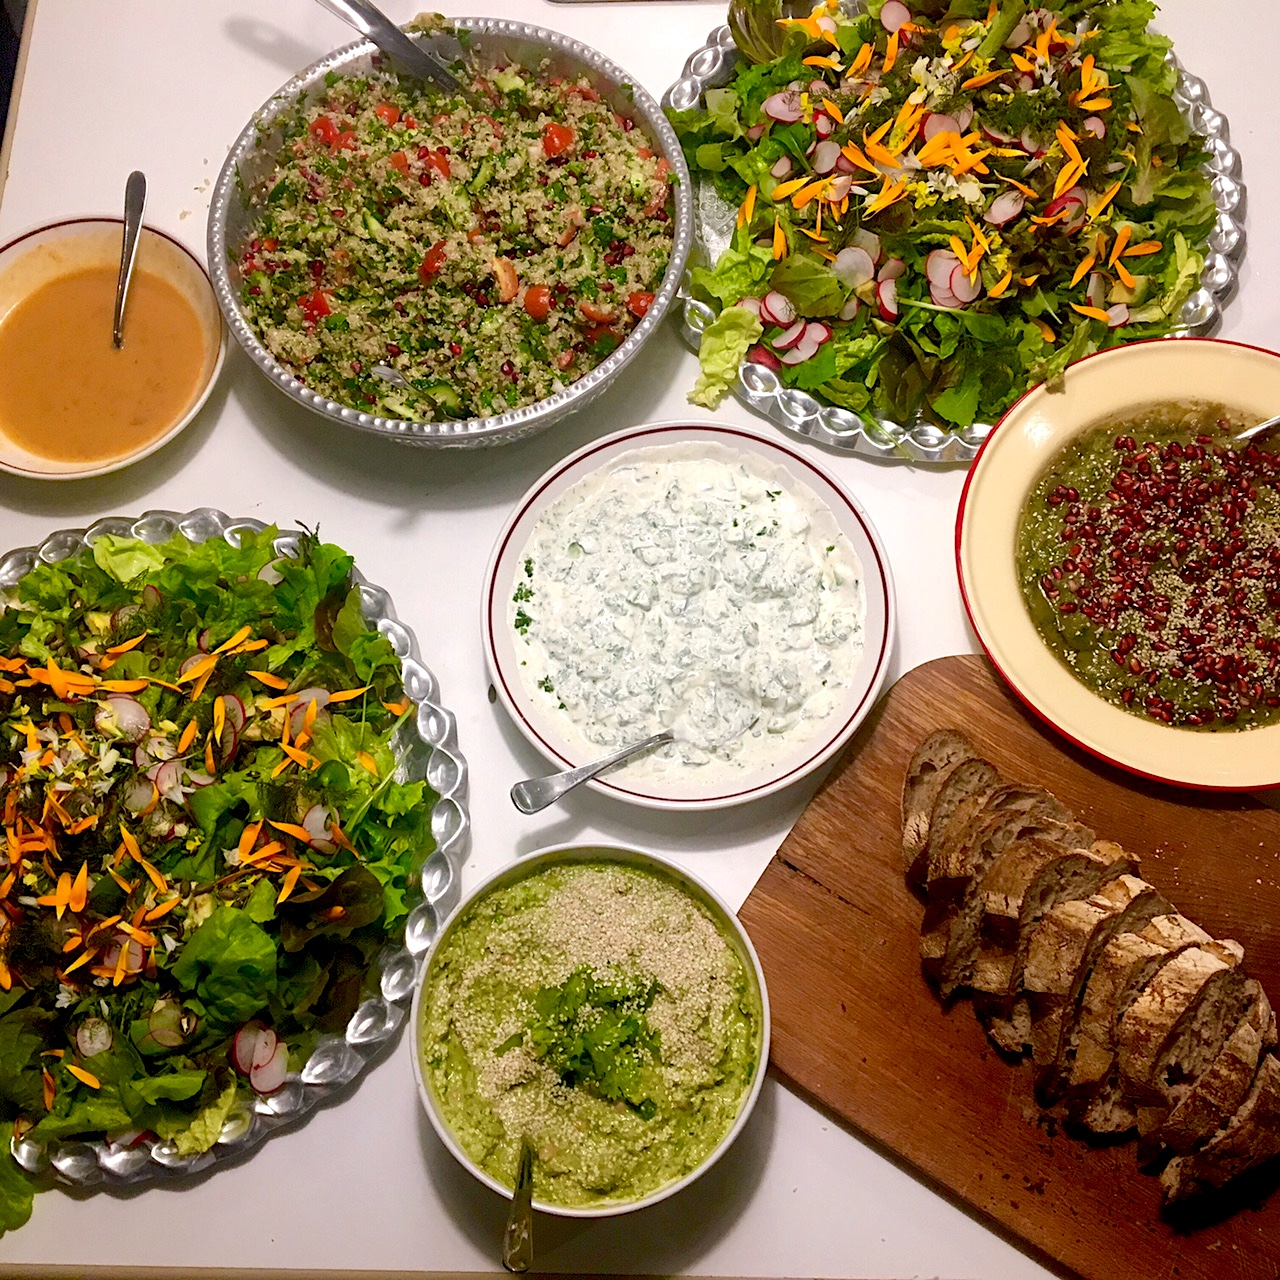 The Lebanese style feast we rustled up using lots of veggies and herbs from the Ballymaloe garden.